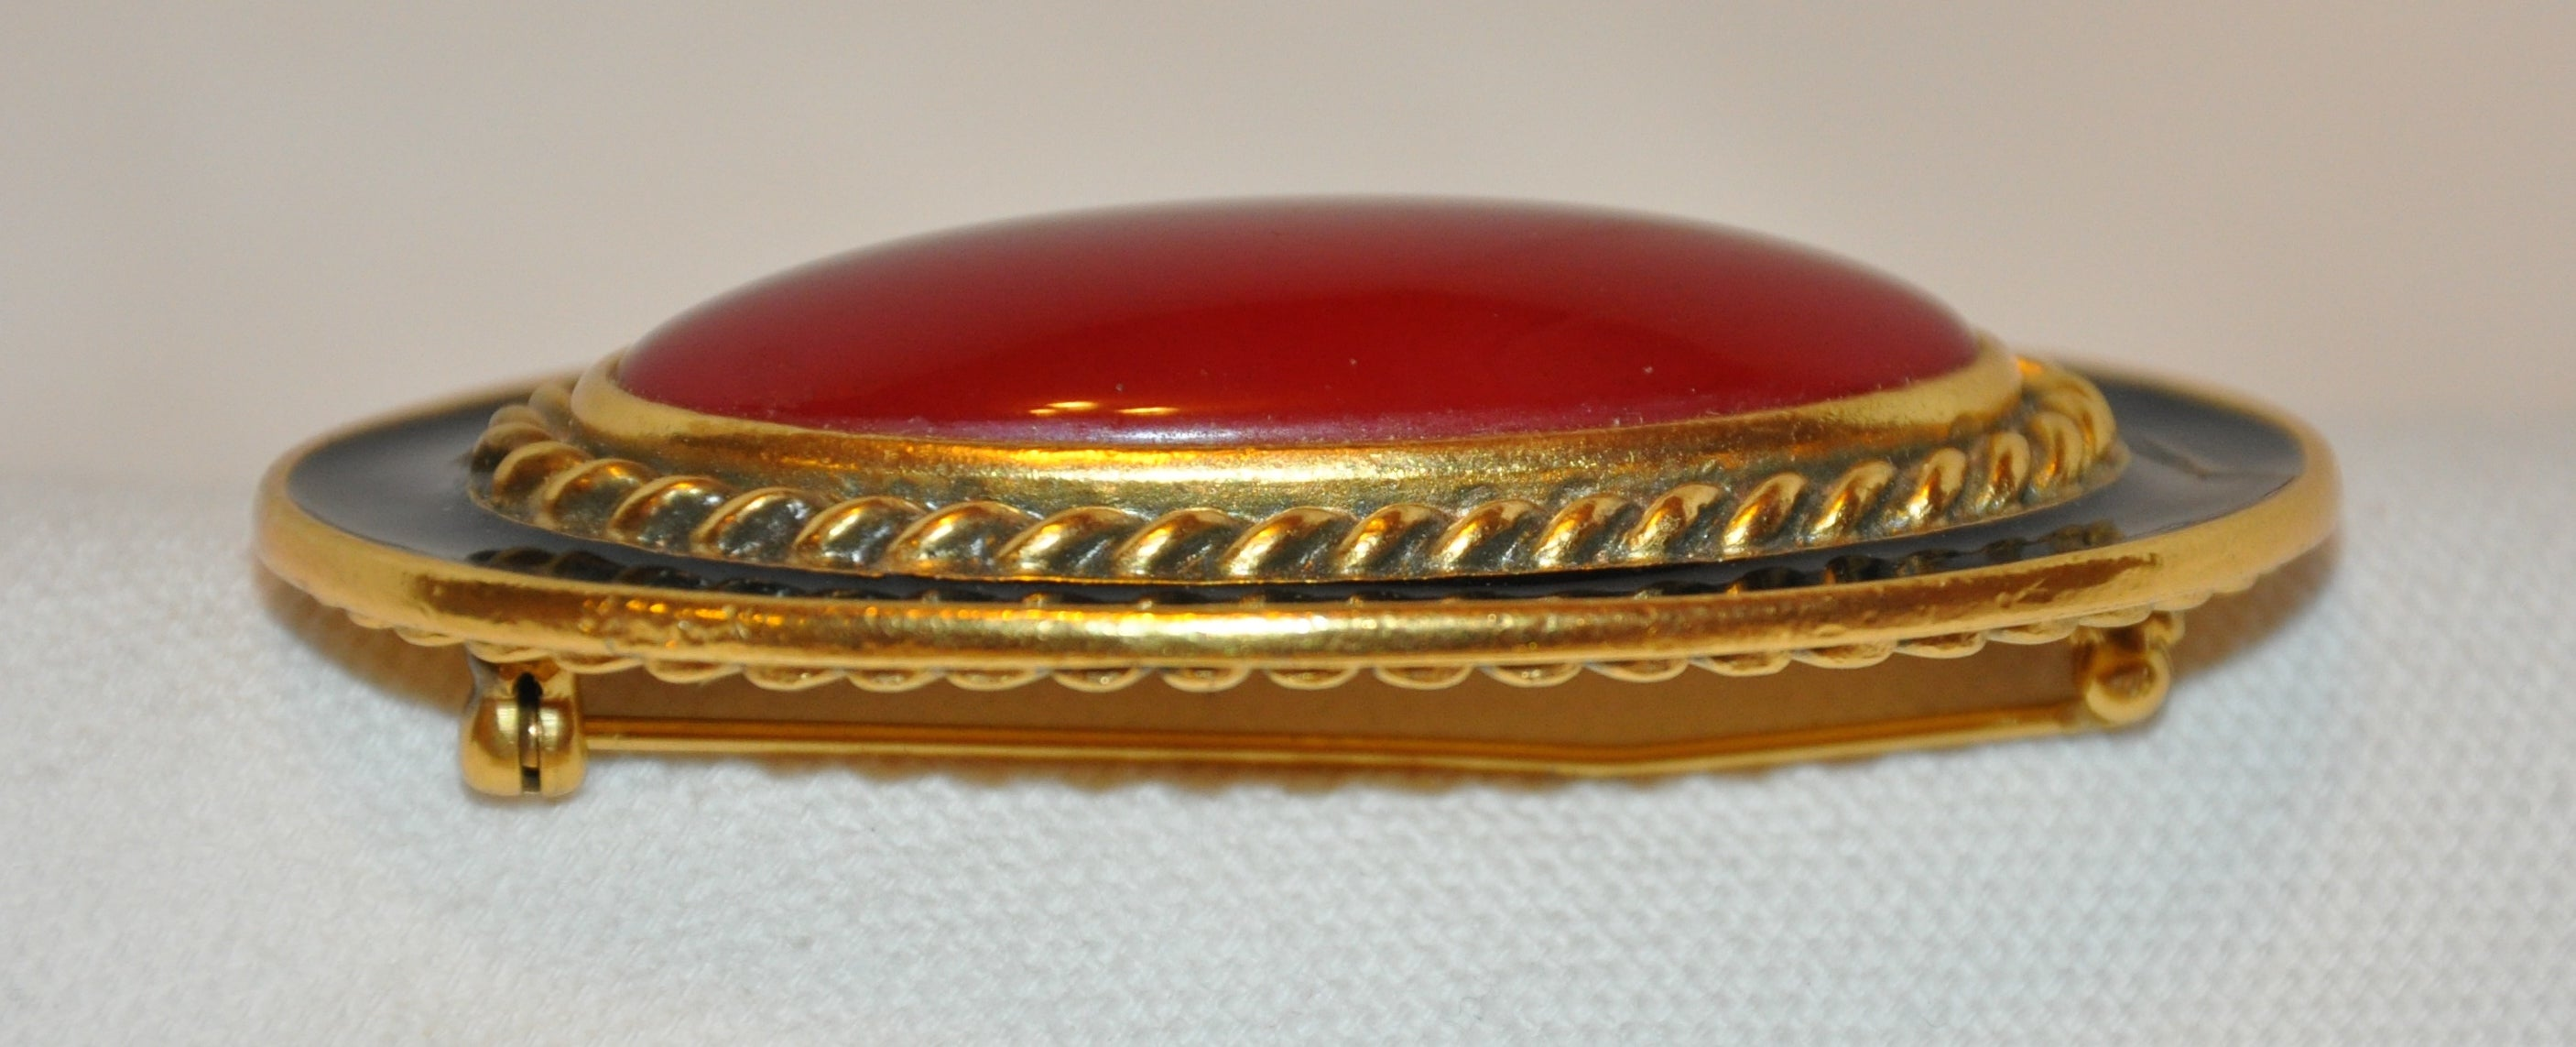 513086908ac Yves Saint Laurent Large Deep Amber Hue pour glass and Black Enamel Brooch  For Sale at 1stdibs